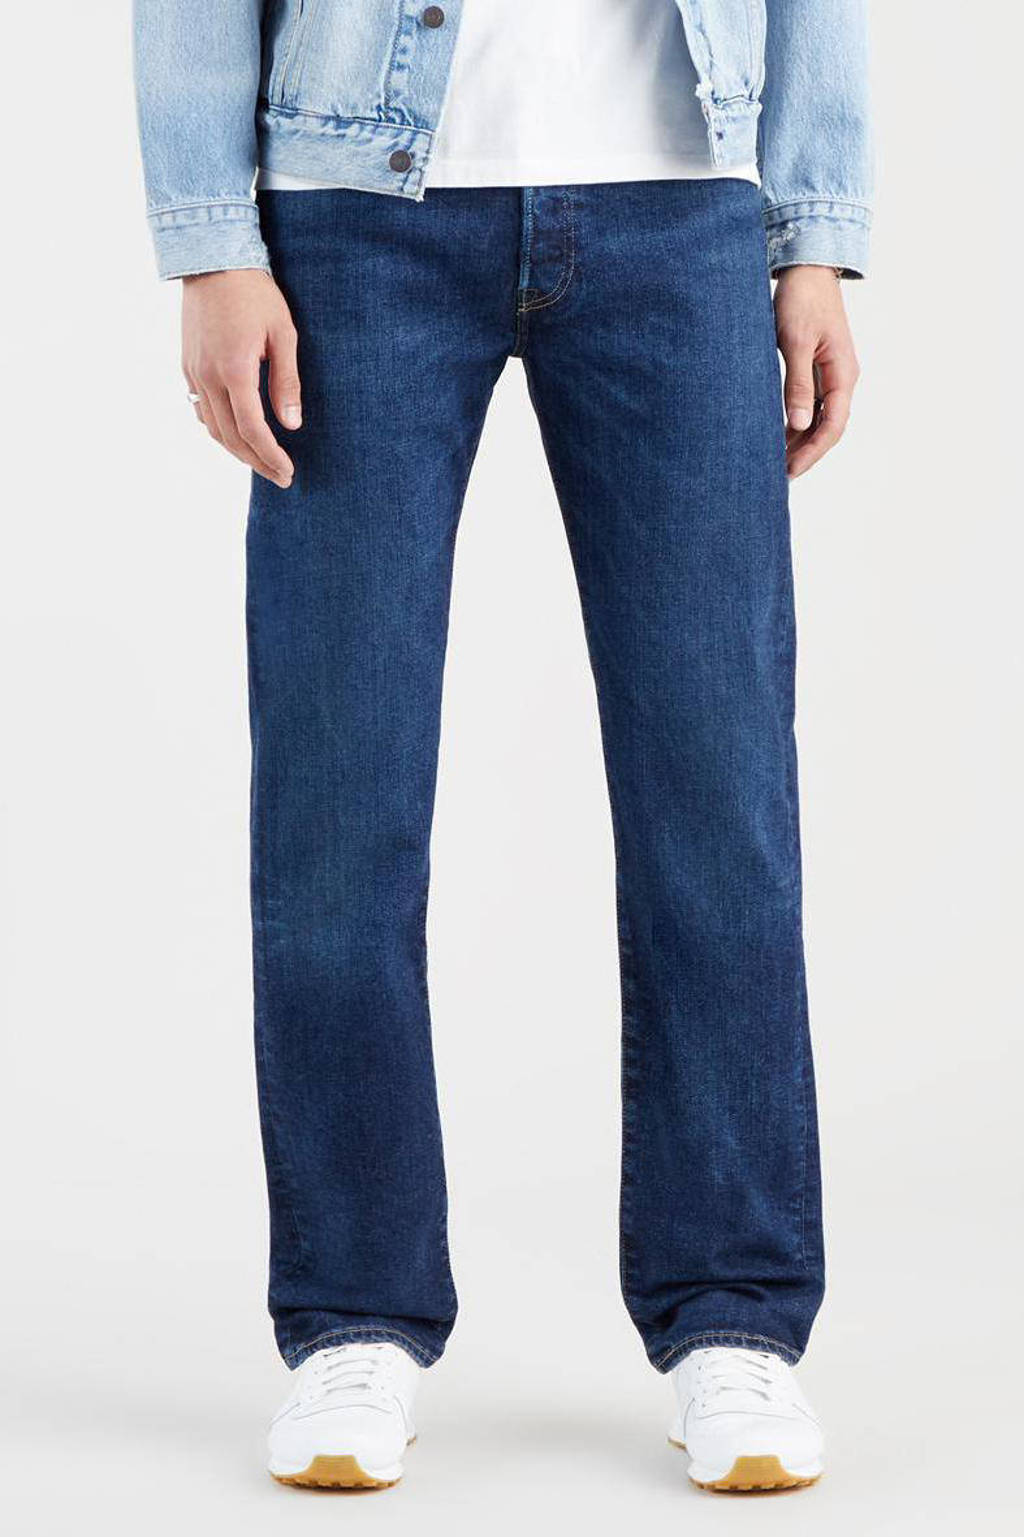 Levi's 501 regular fit jeans do the rump, DO THE RUMP